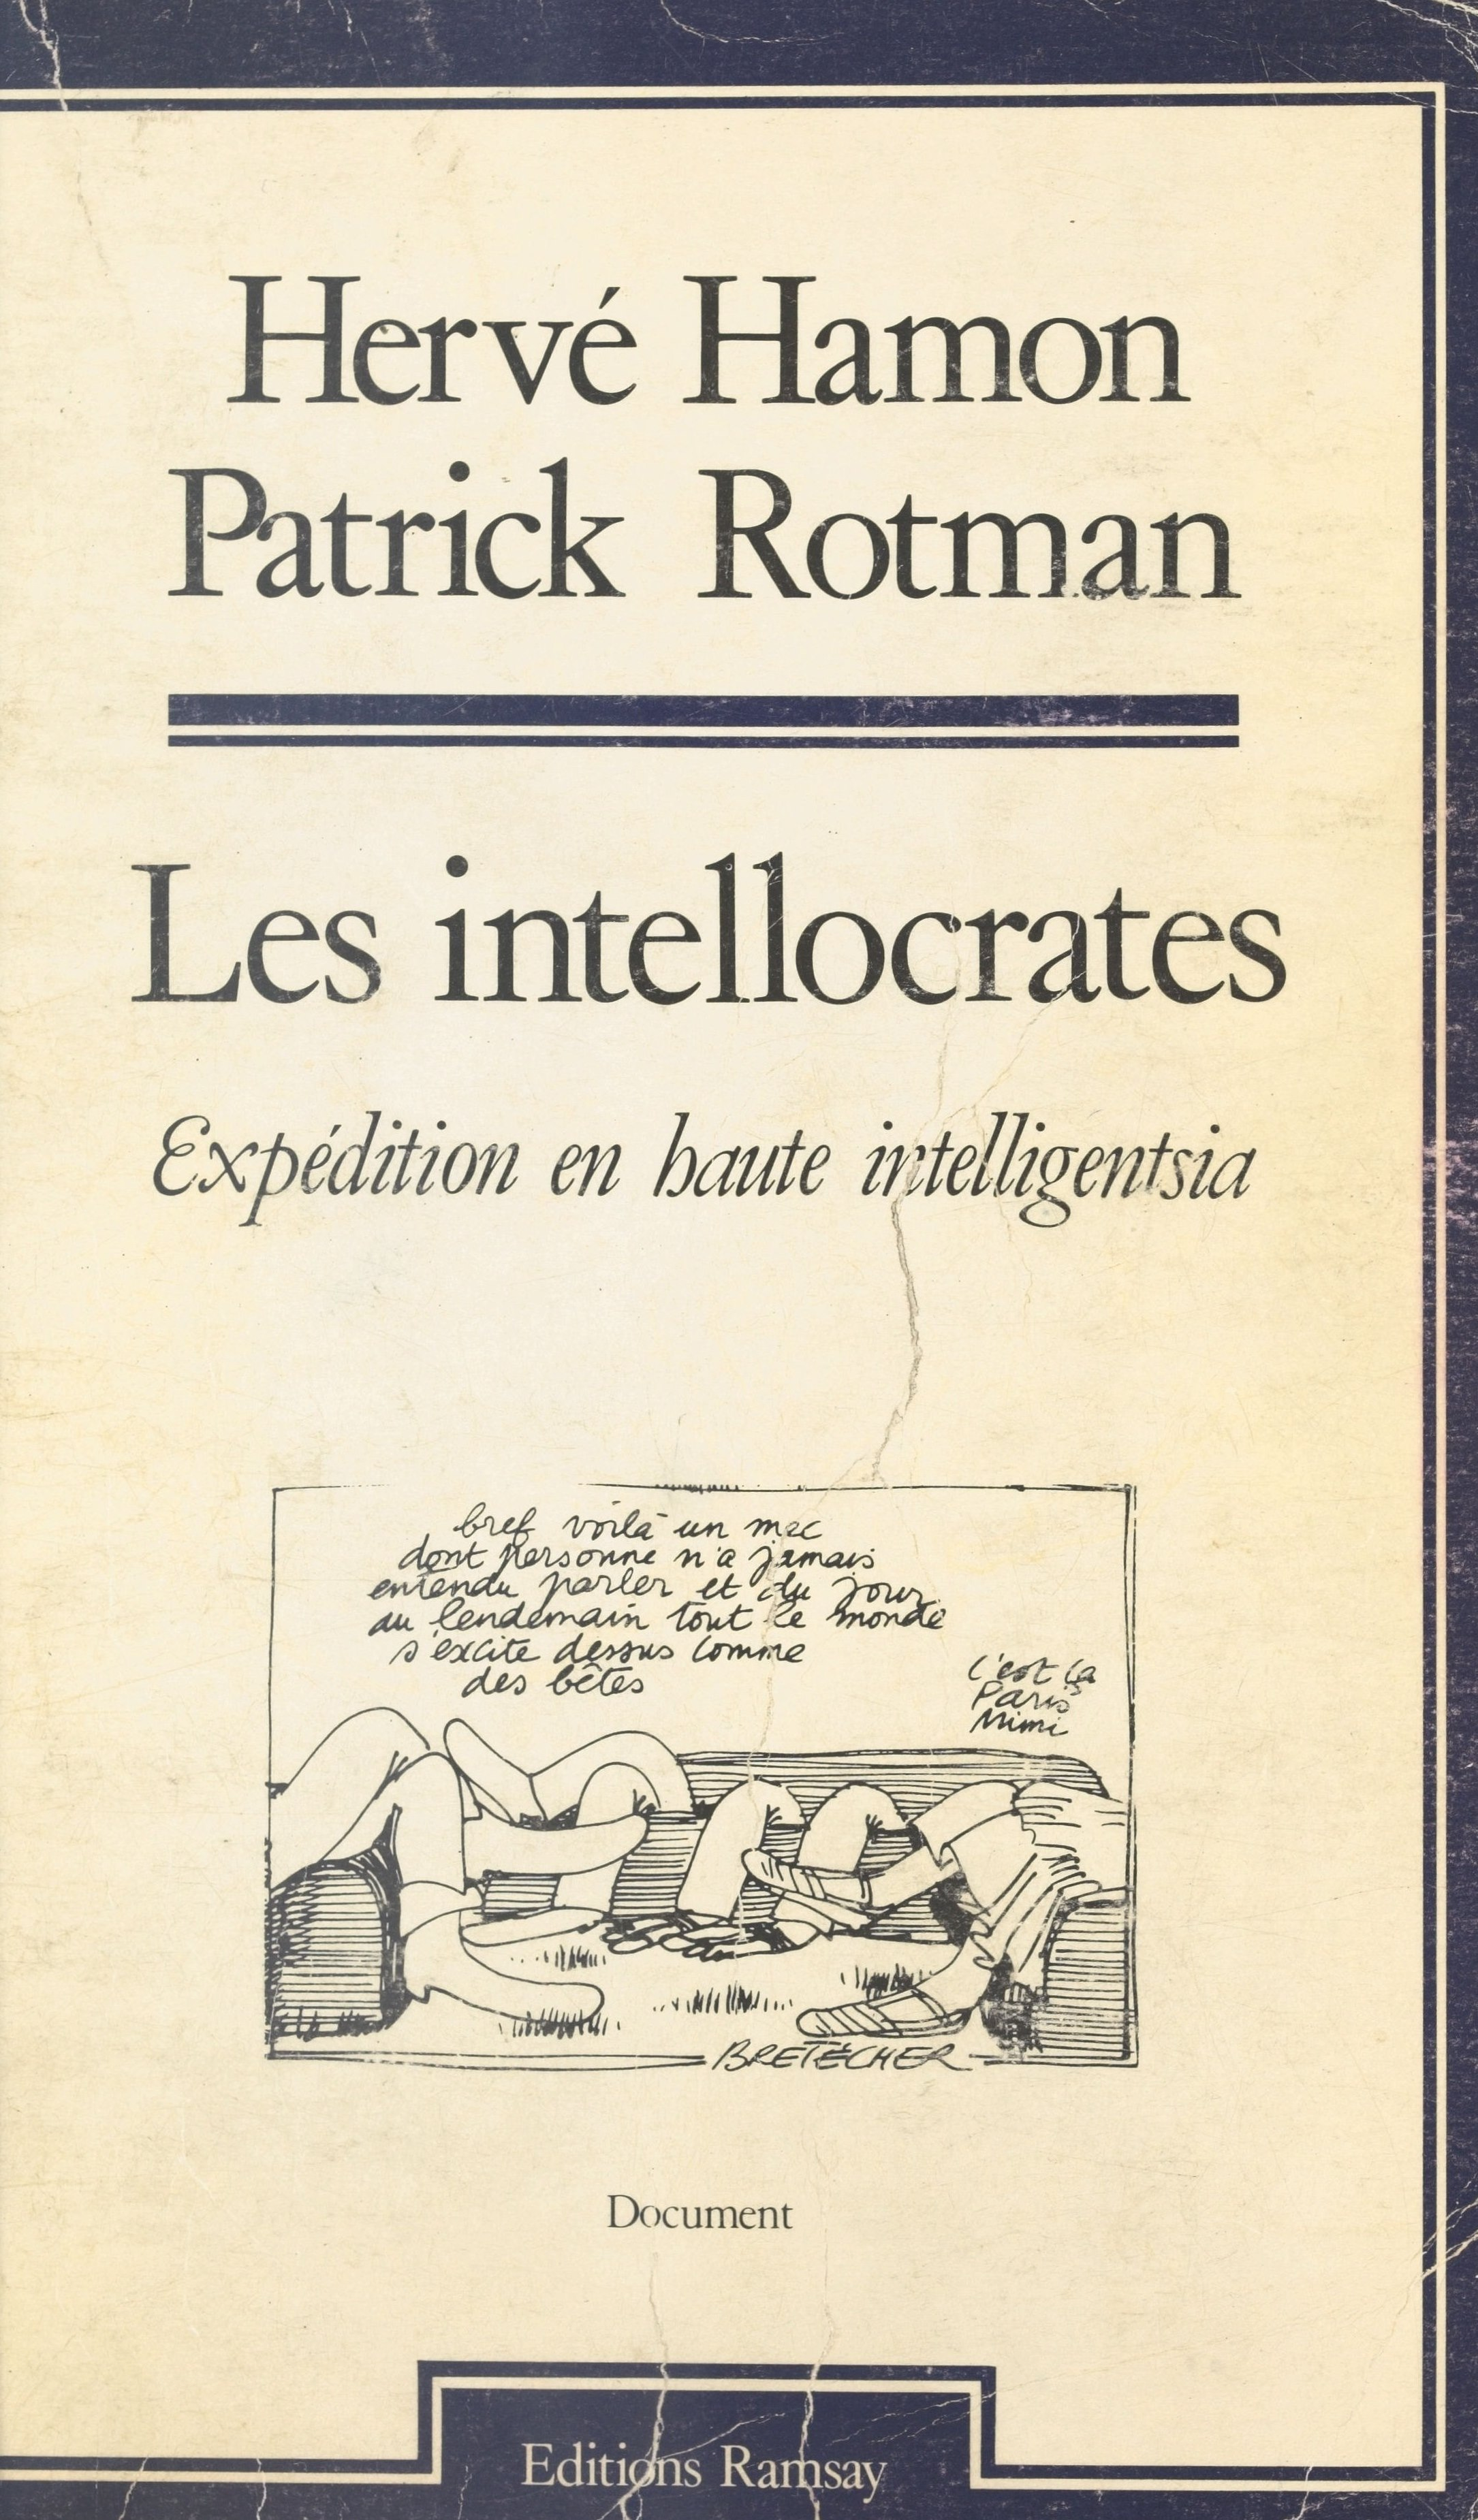 Les Intellocrates : Expédition en haute intelligentsia, Patrick Rotman